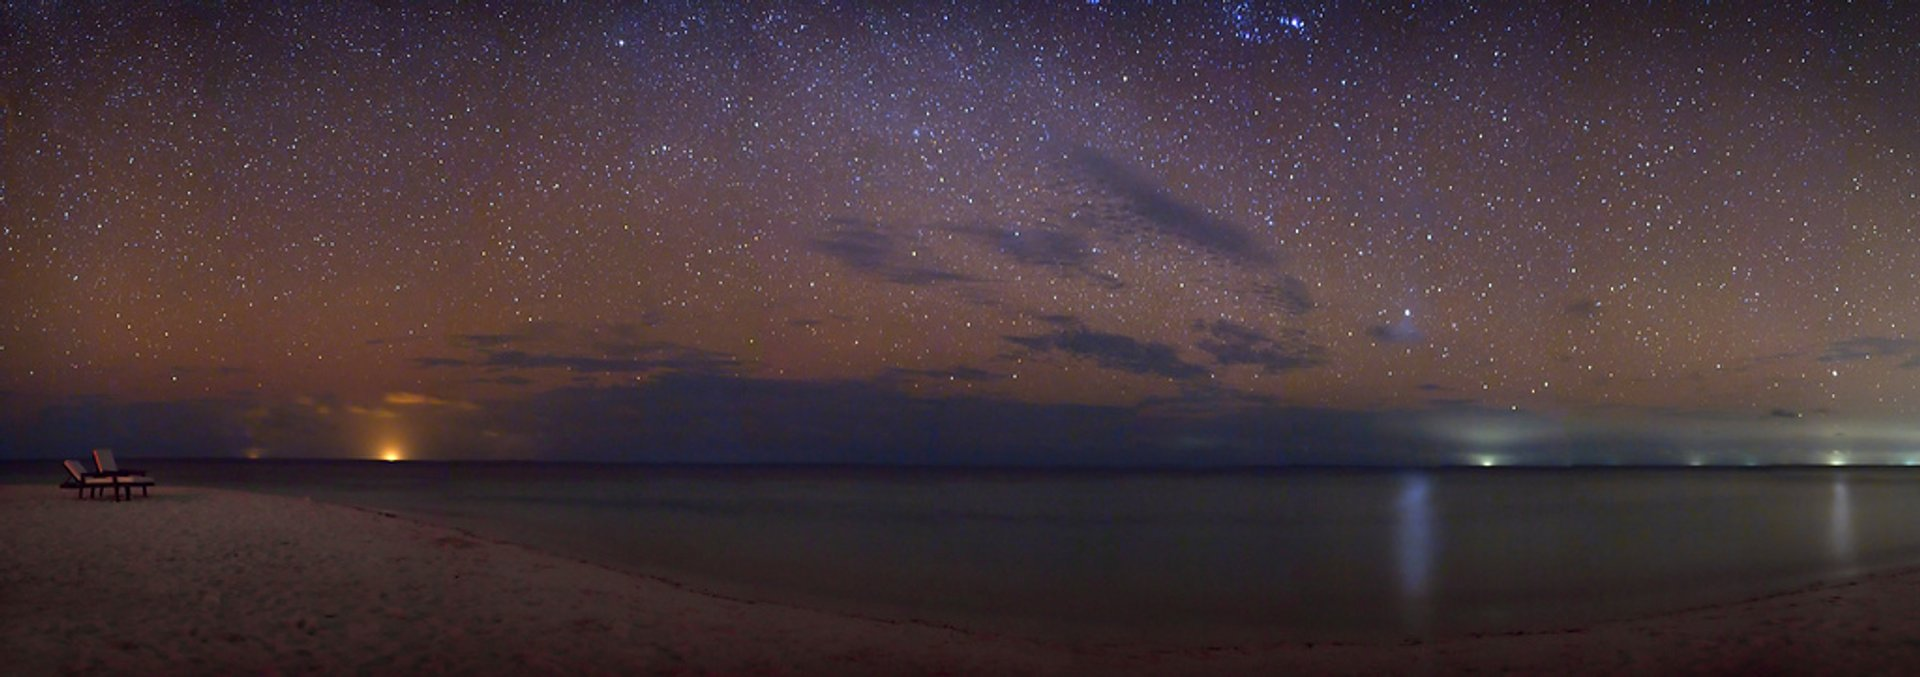 Stargazing in Maldives 2020 - Best Time